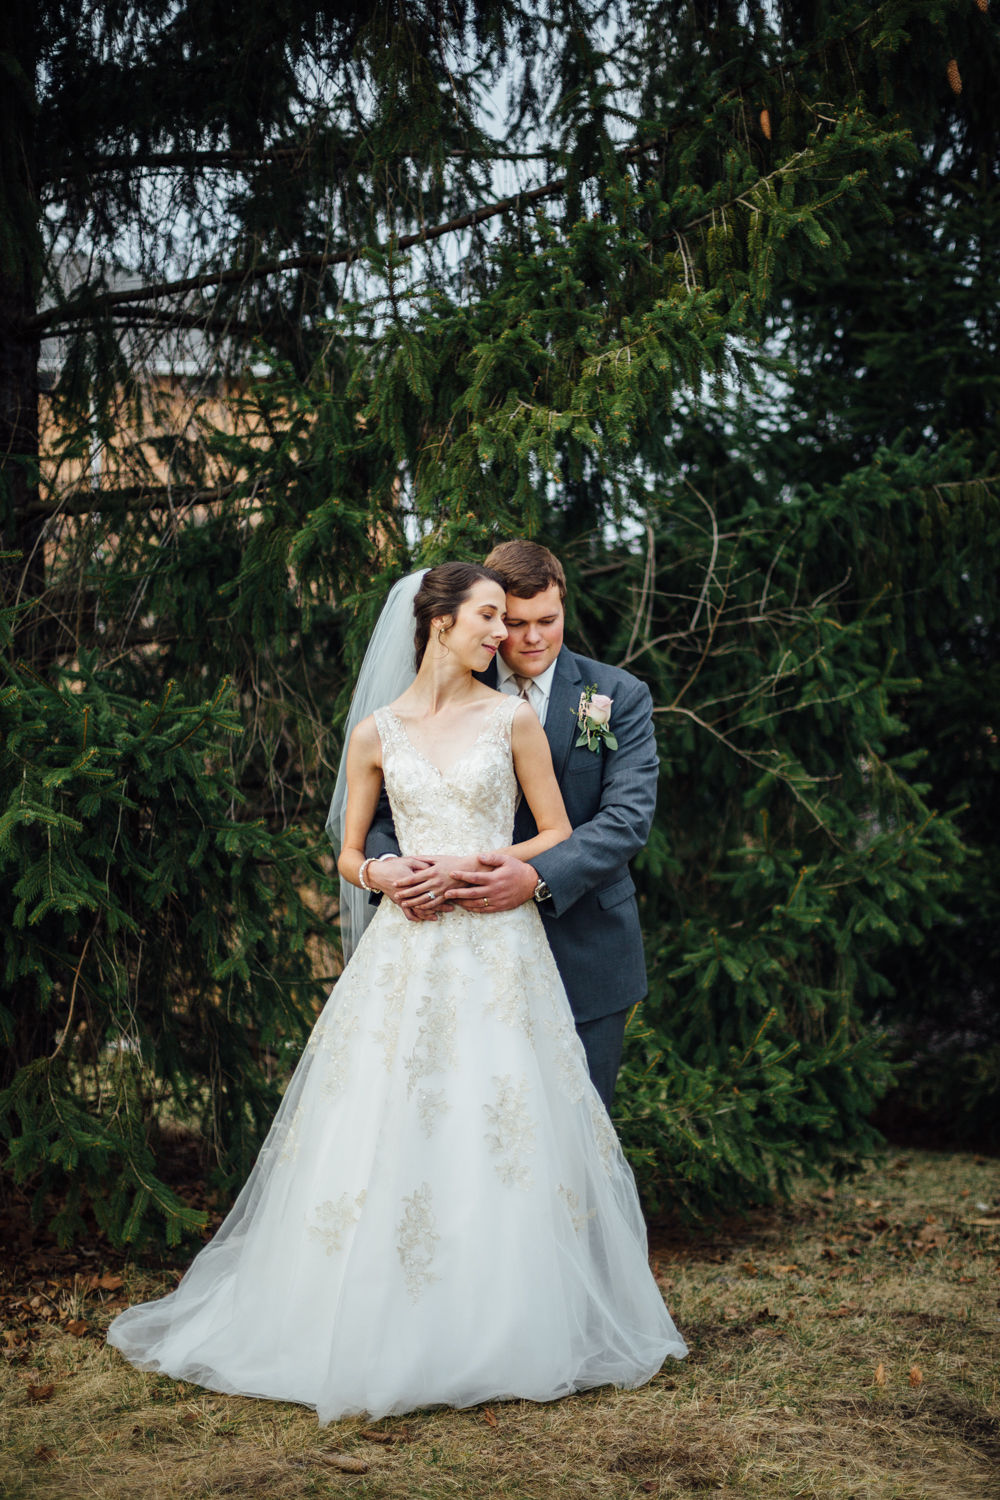 Fun, Intimate Spring Wedding by Corrie Mick Photography-59.jpg